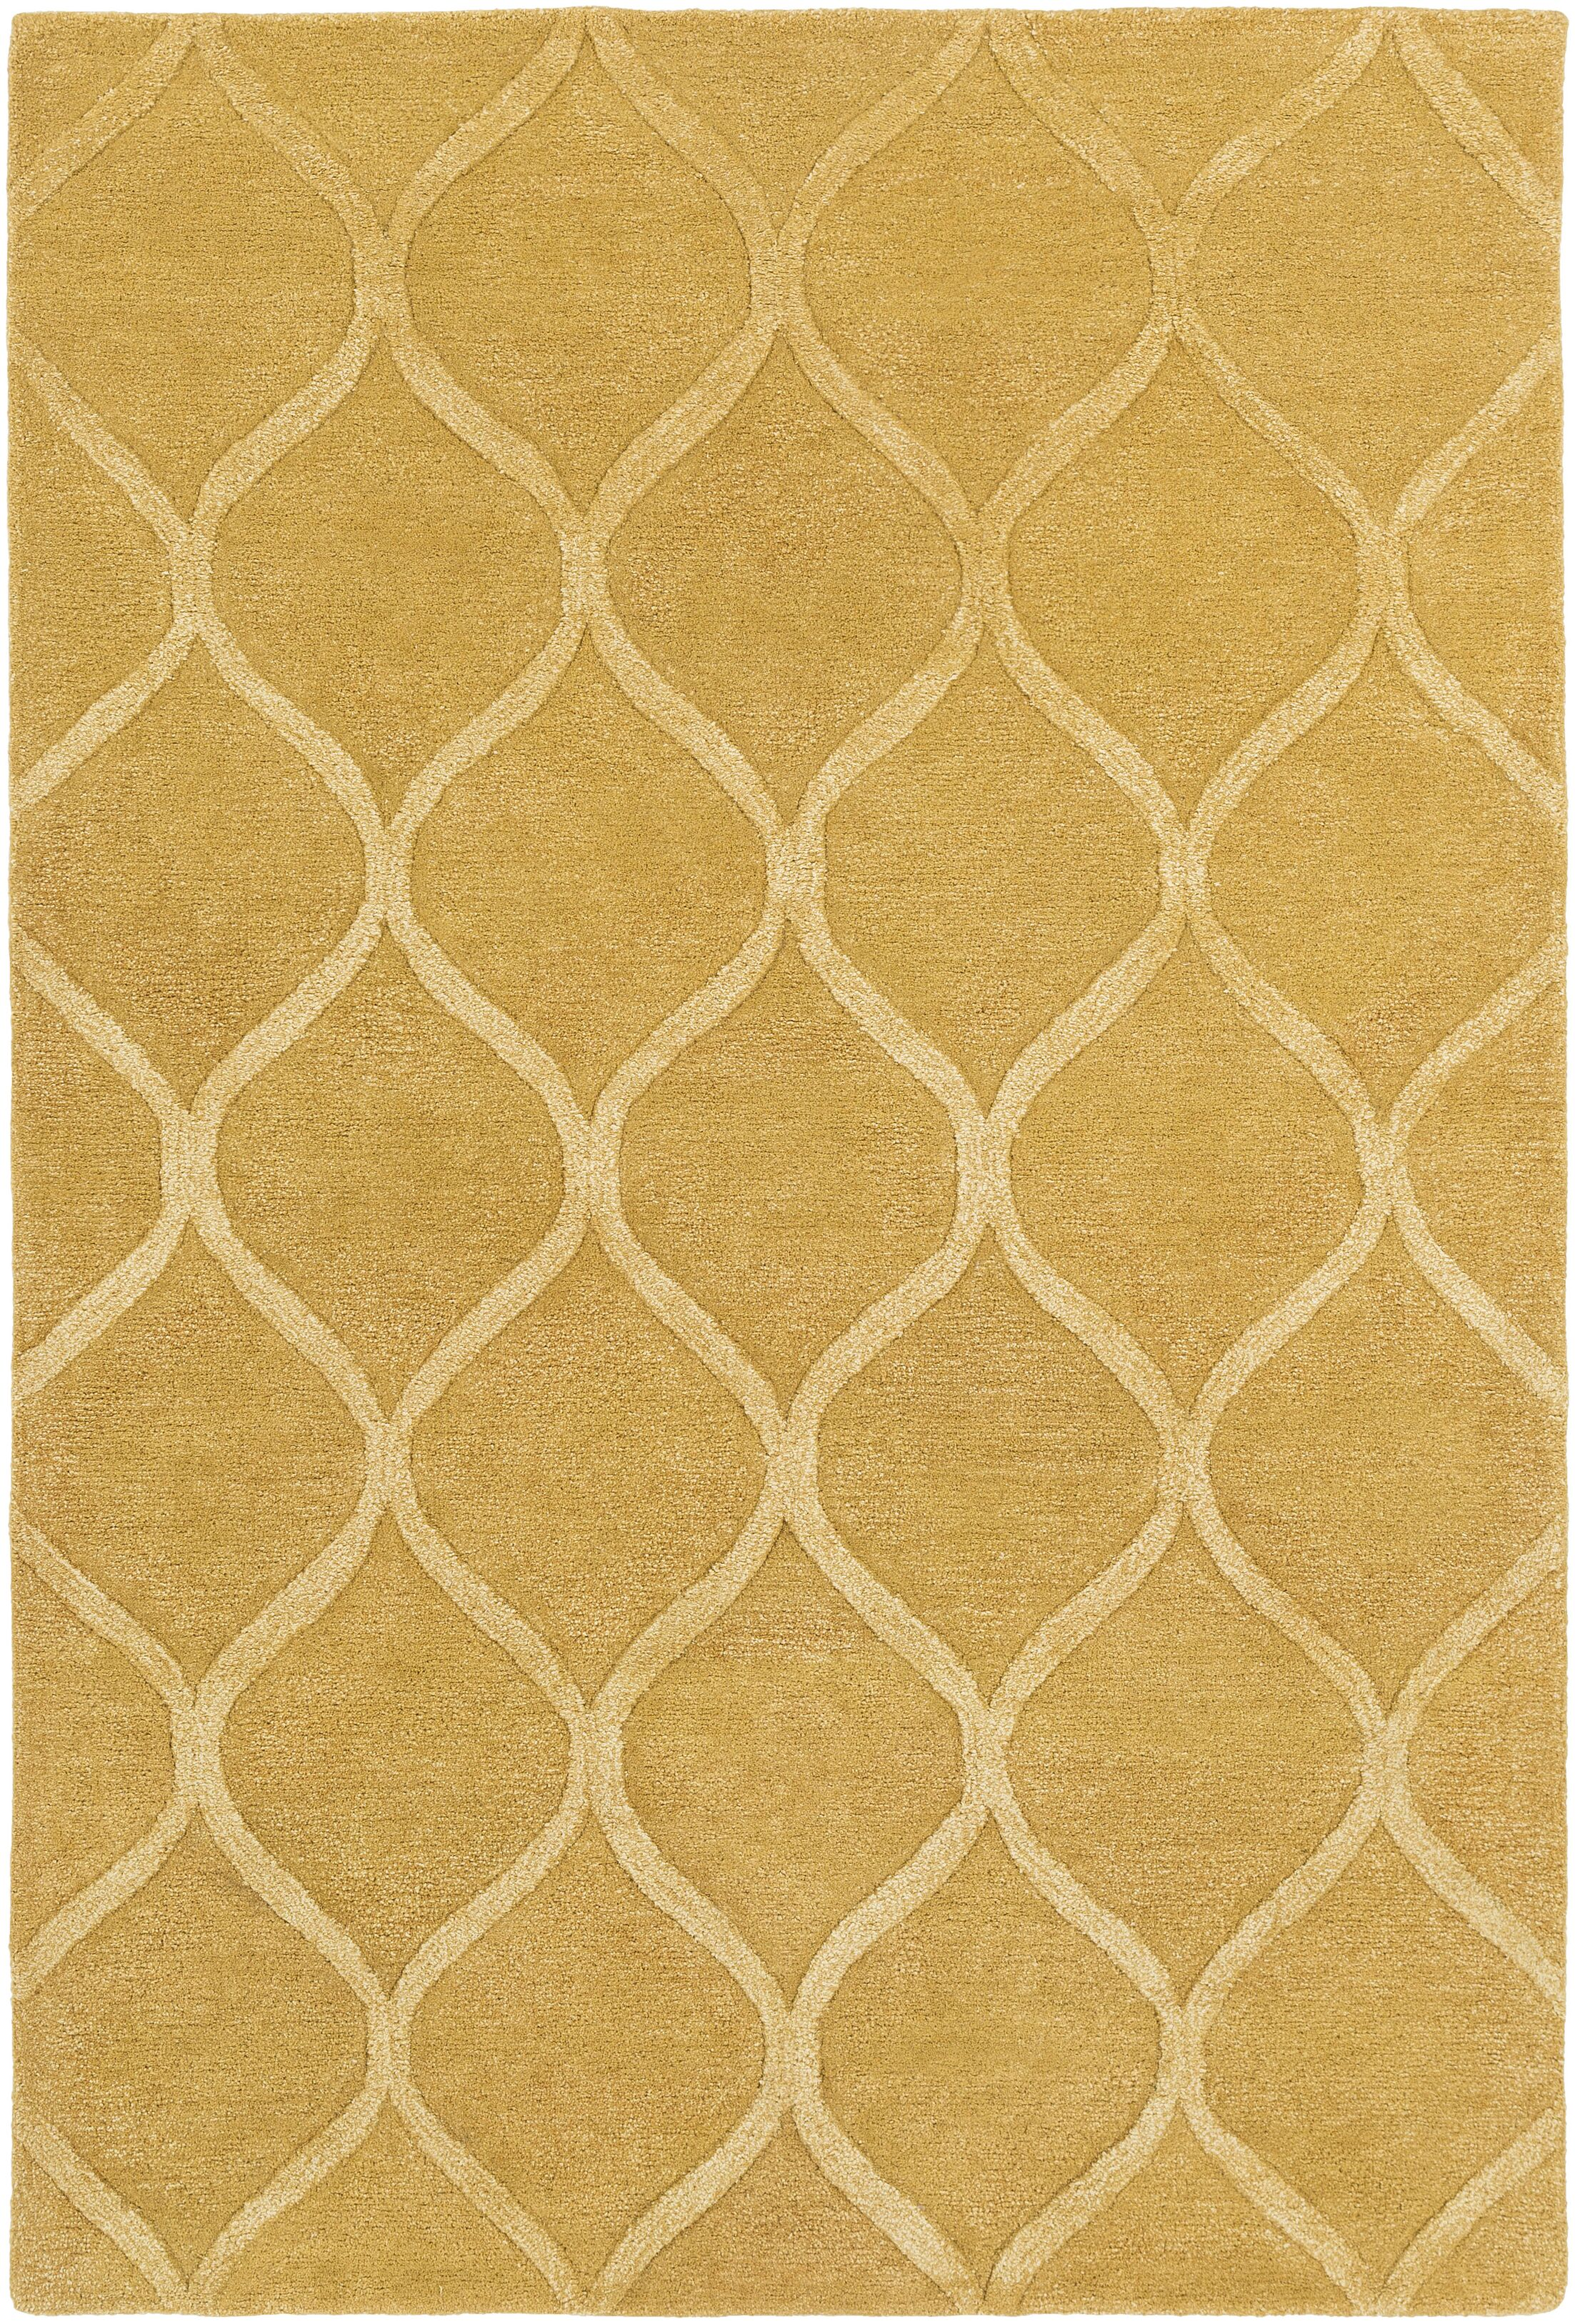 Bronaugh Hand-Tufted Gold Area Rug Rug Size: Round 6'